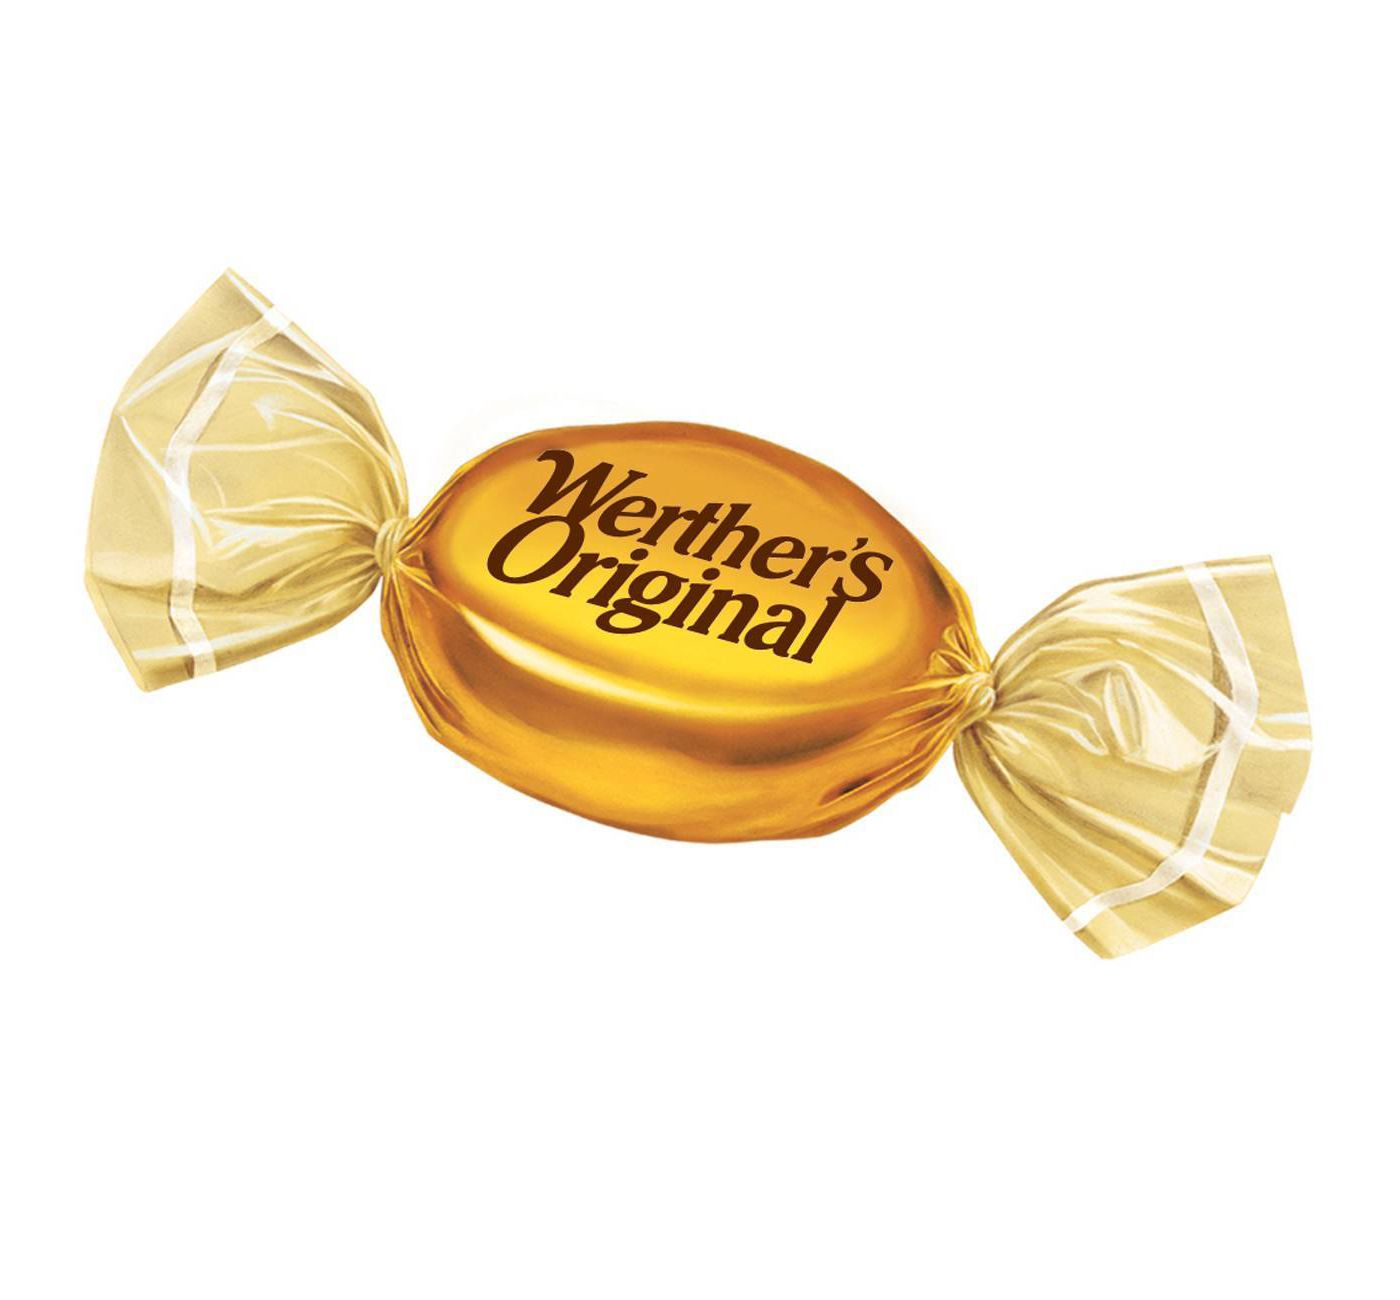 Werther's Original Caramel Hard Candies, 2.65 oz